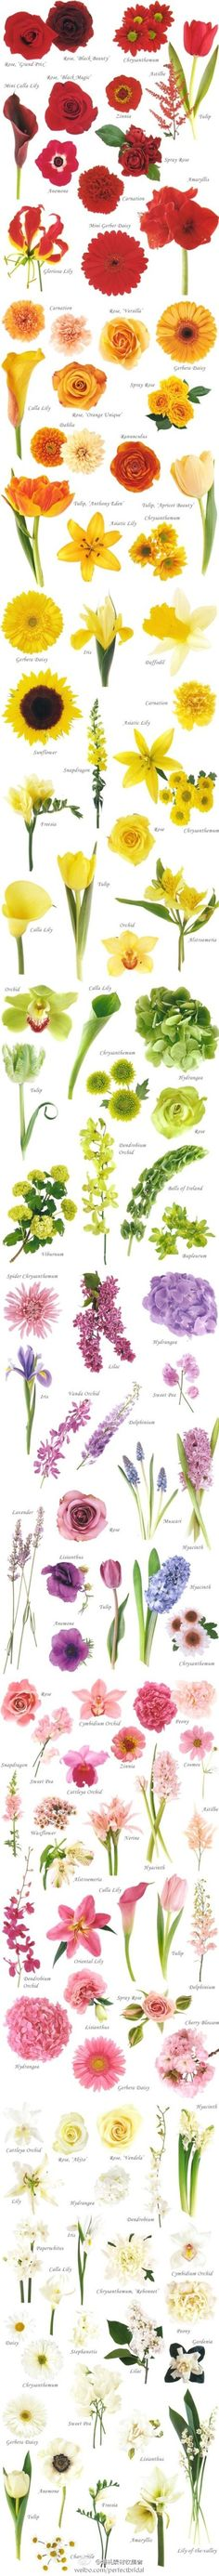 "Flower names by Color Have you ever found a picture of a bouquet and wondered, ""What is that flower?"" Here is a collection of flower names sorted by color. A few bouquet examples are at the bottom and so… Deco Floral, Arte Floral, Floral Design, Flower Chart, Flower Names, Dream Garden, Gardening Tips, Planting Flowers, Flowers Garden"